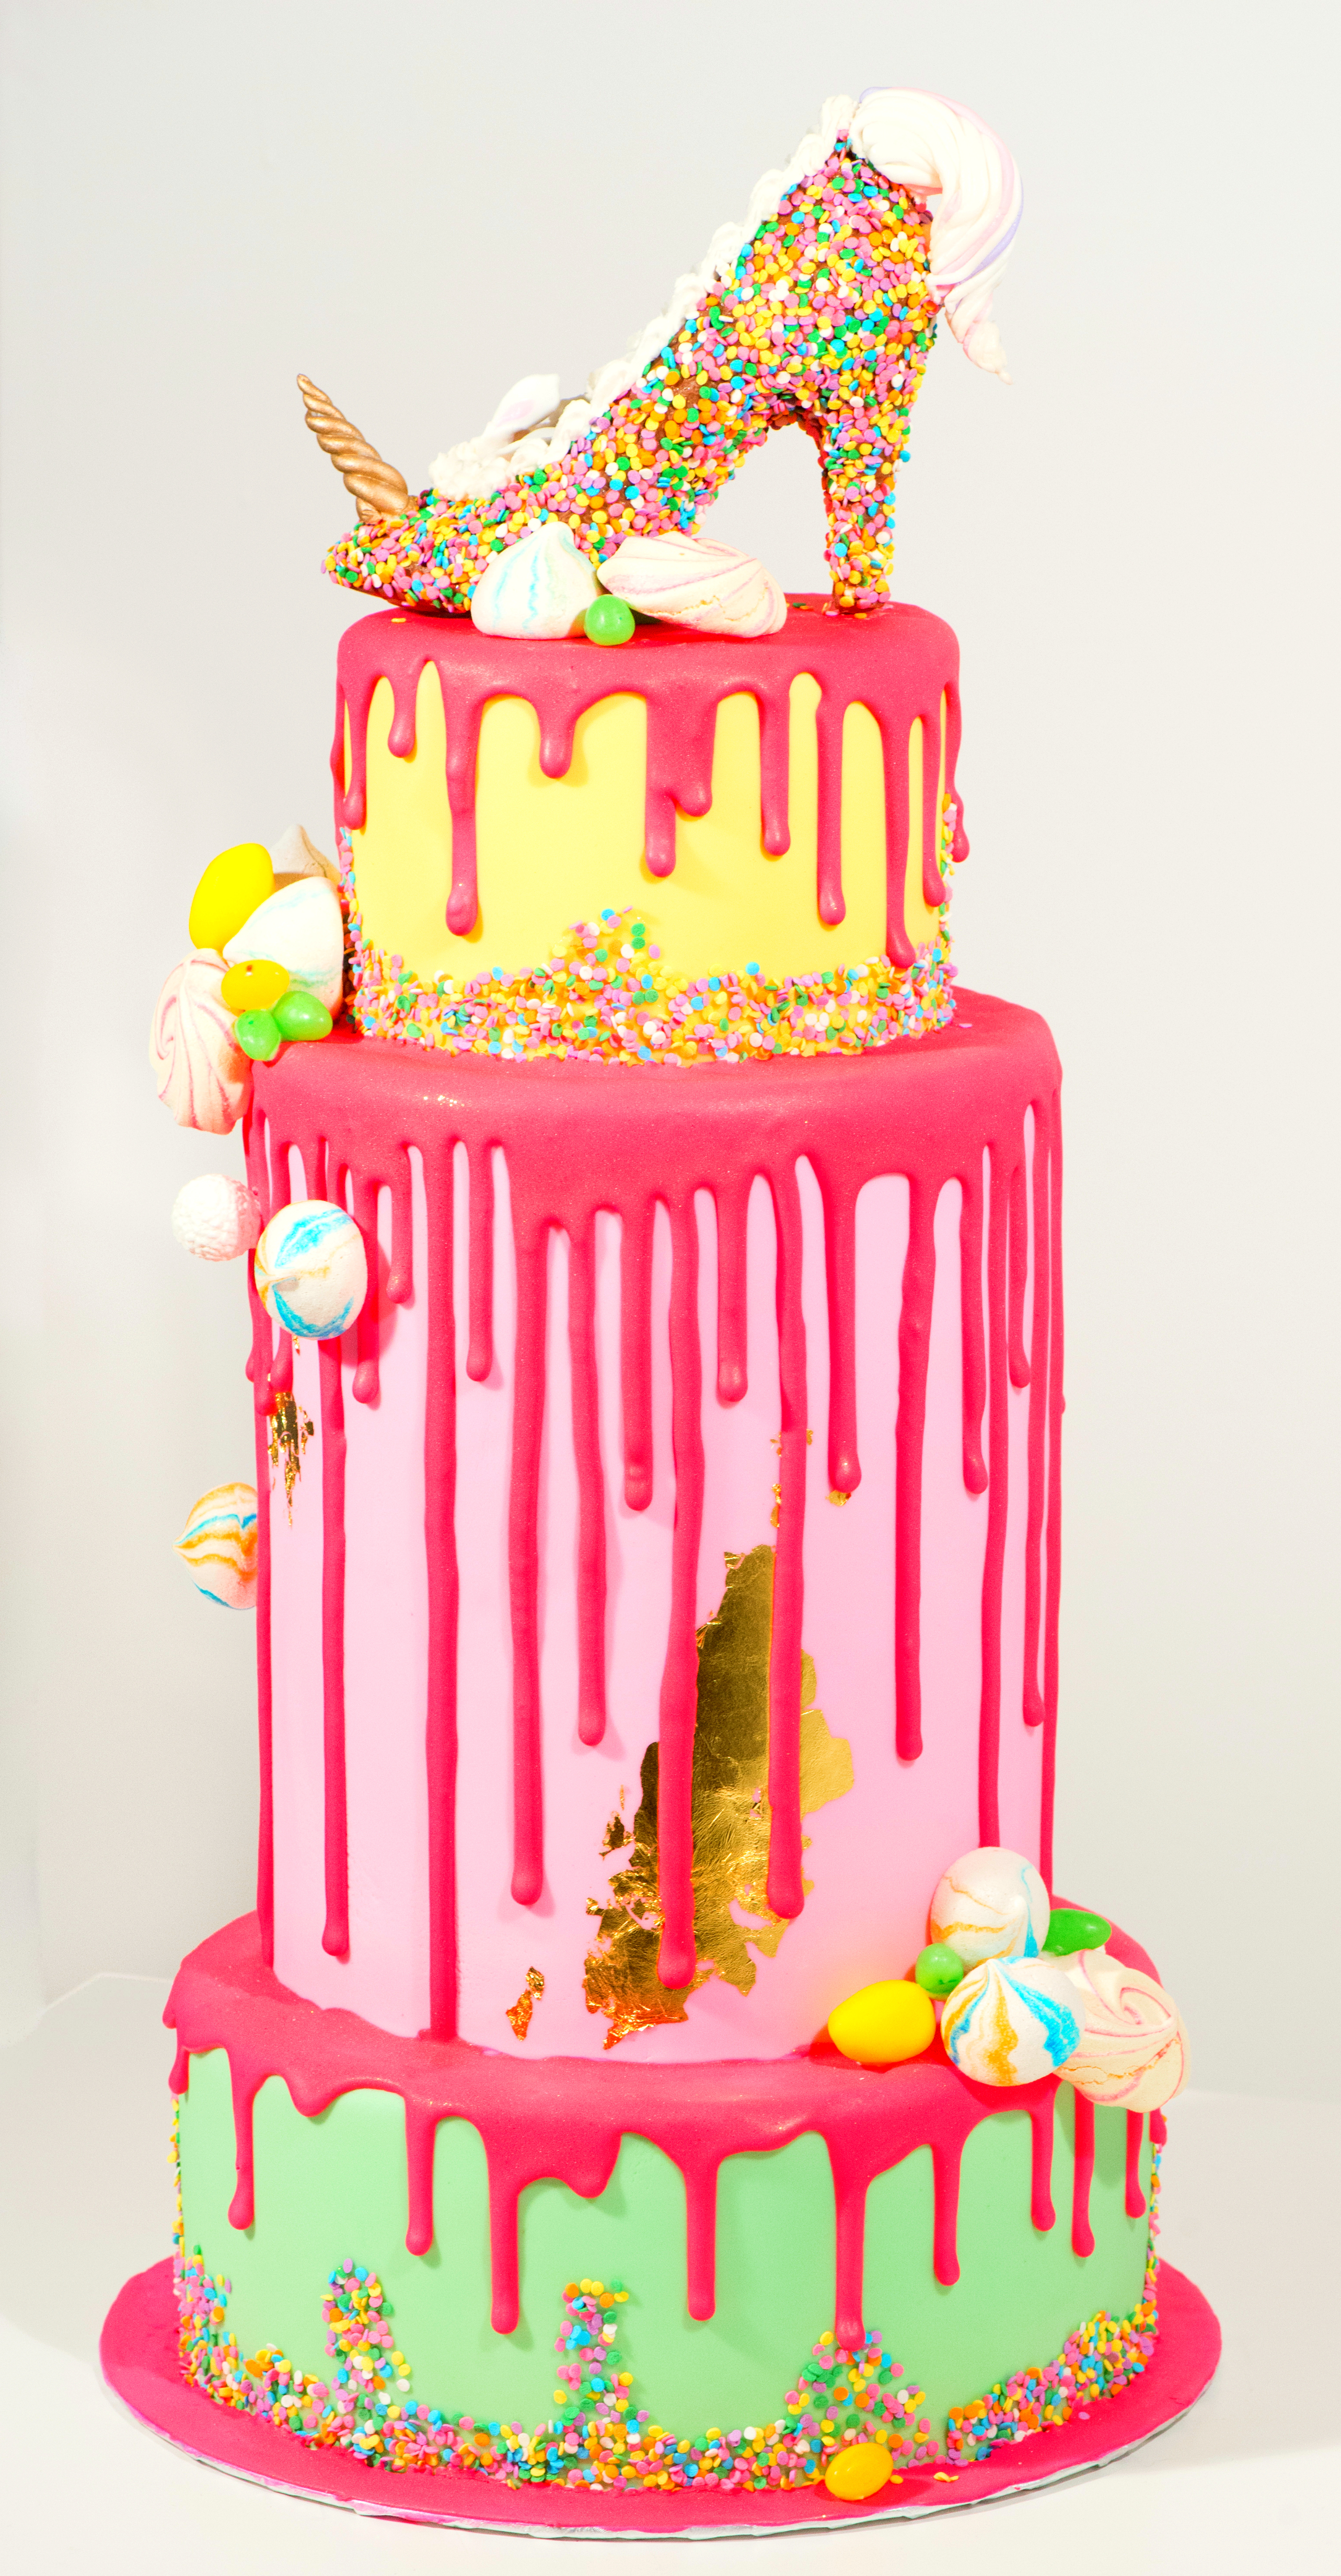 All Cakes Are Custom Designed With Your Event In Mind Youre Unique Cake Should Be Too